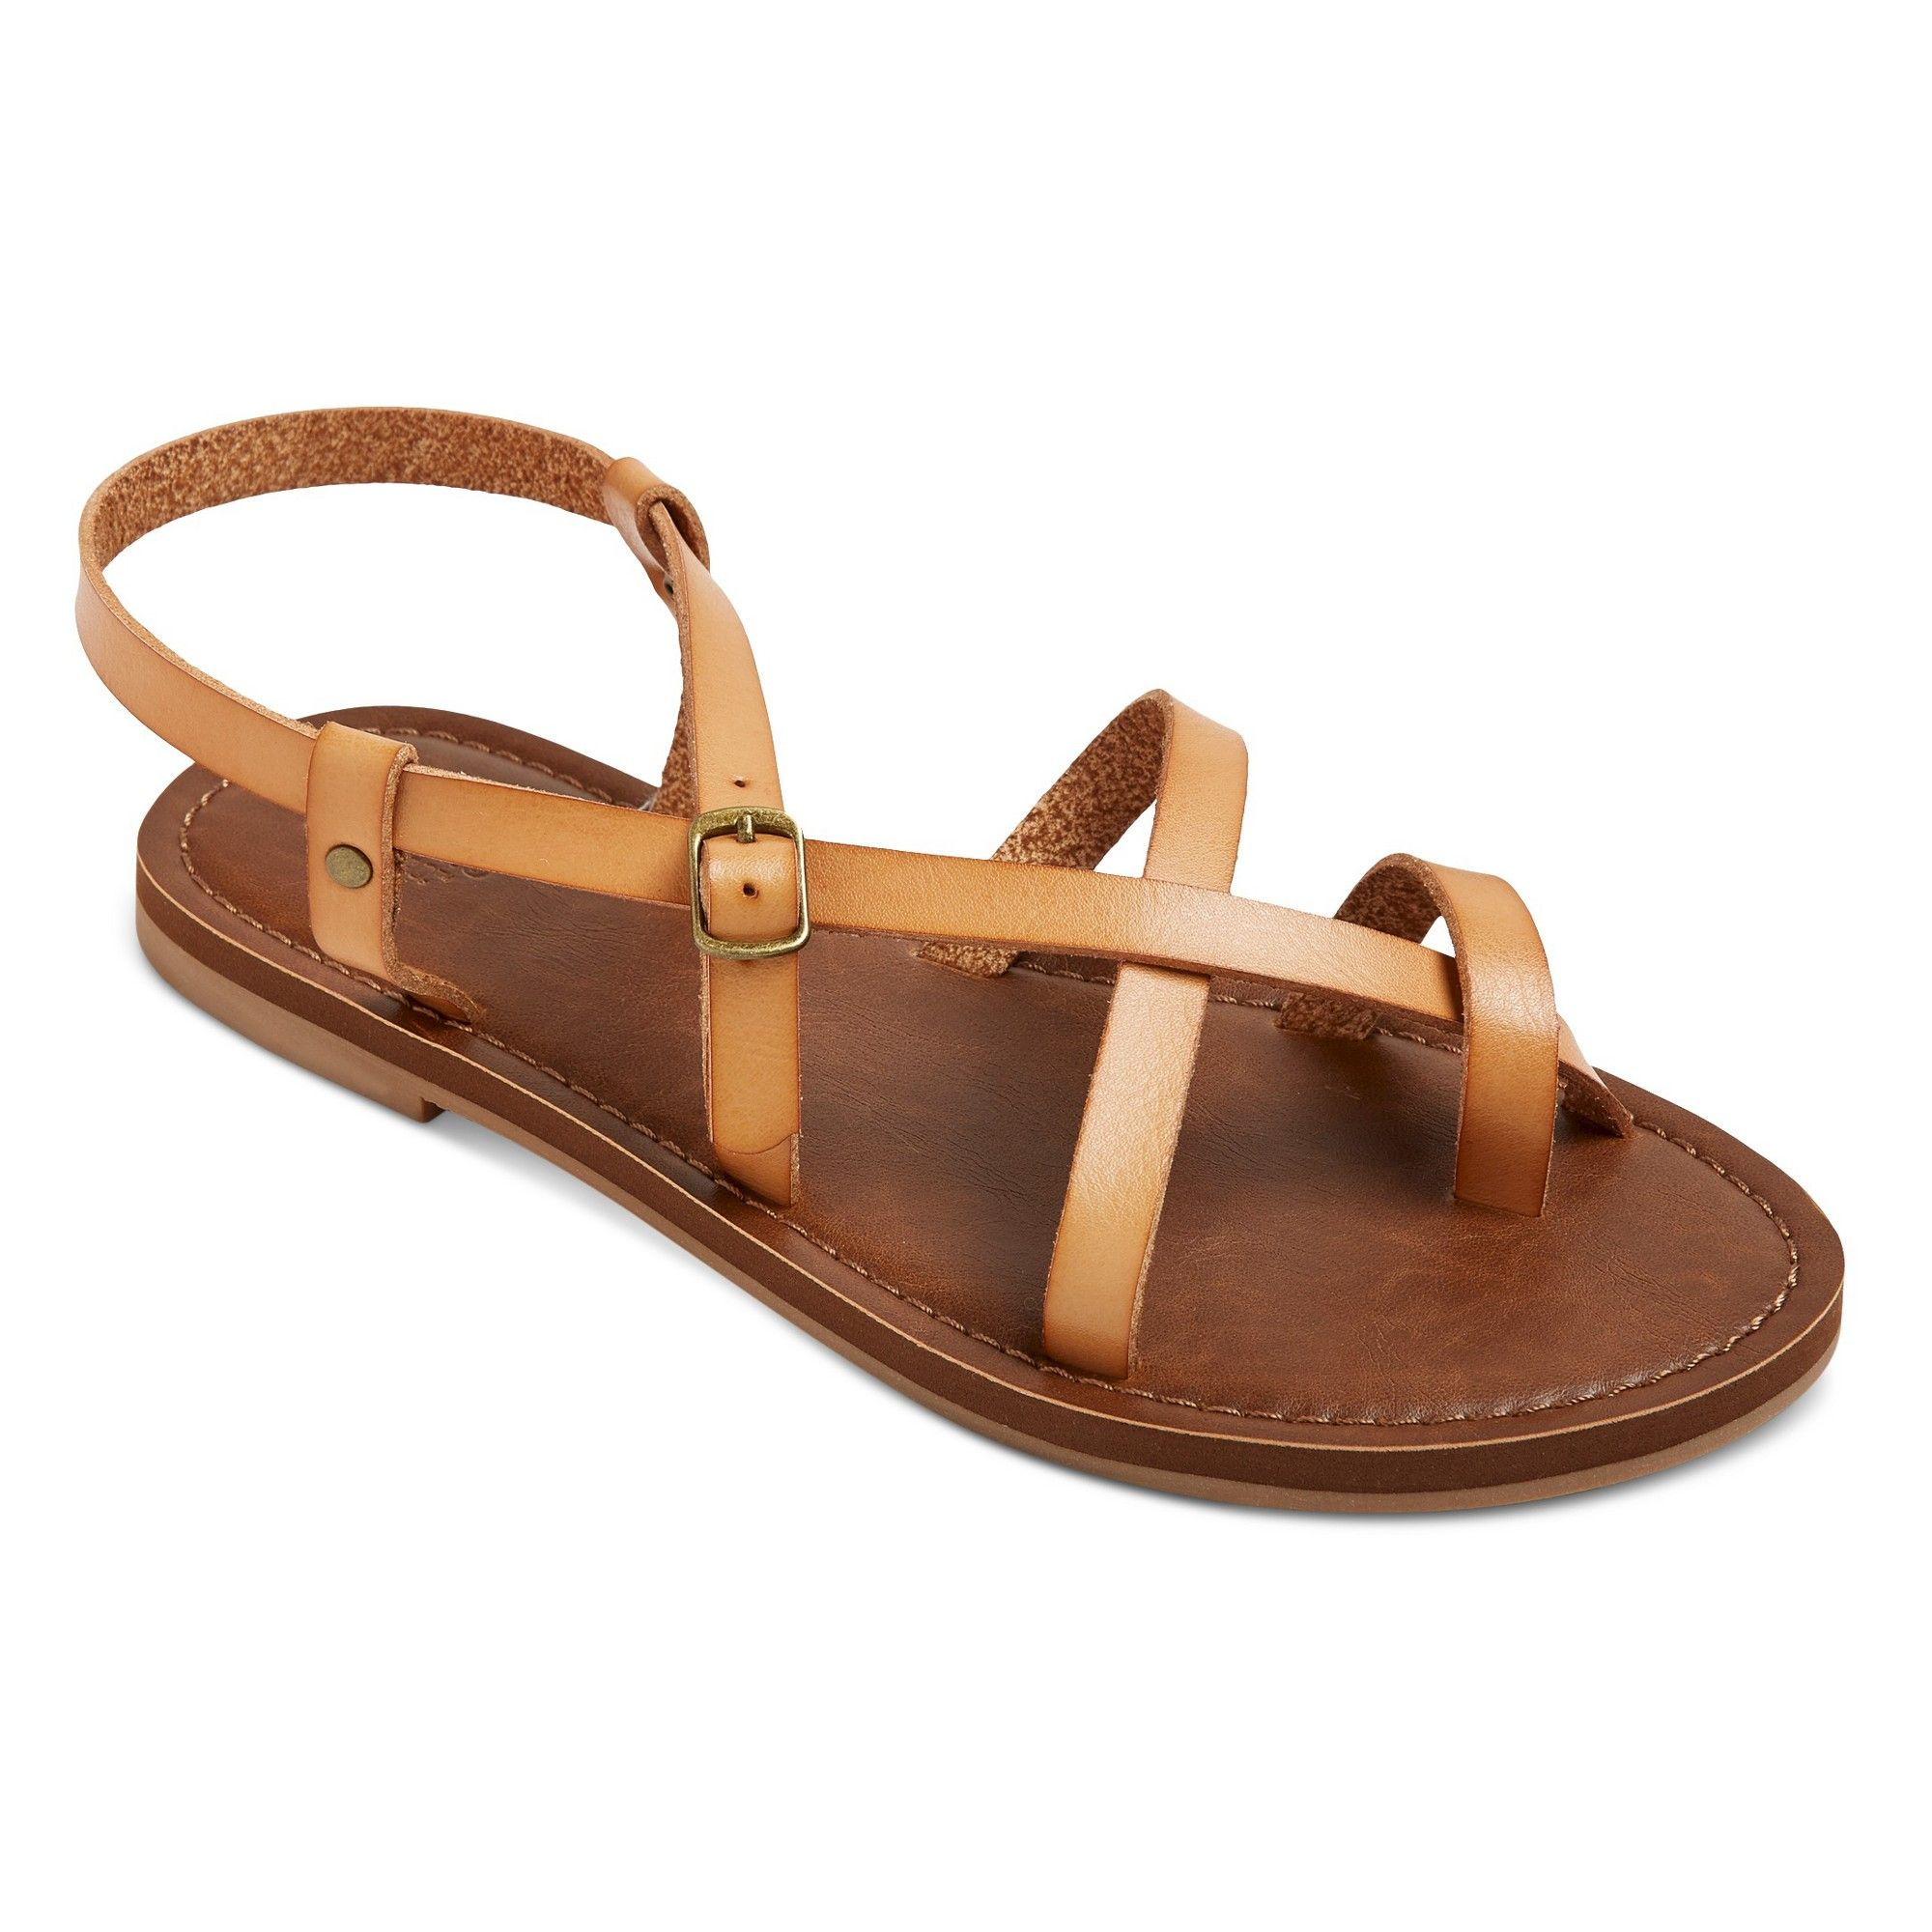 053d73a5d631 Women s Wide Width Lavinia Thong Sandals - Mossimo Supply Co. Tan 5.5W